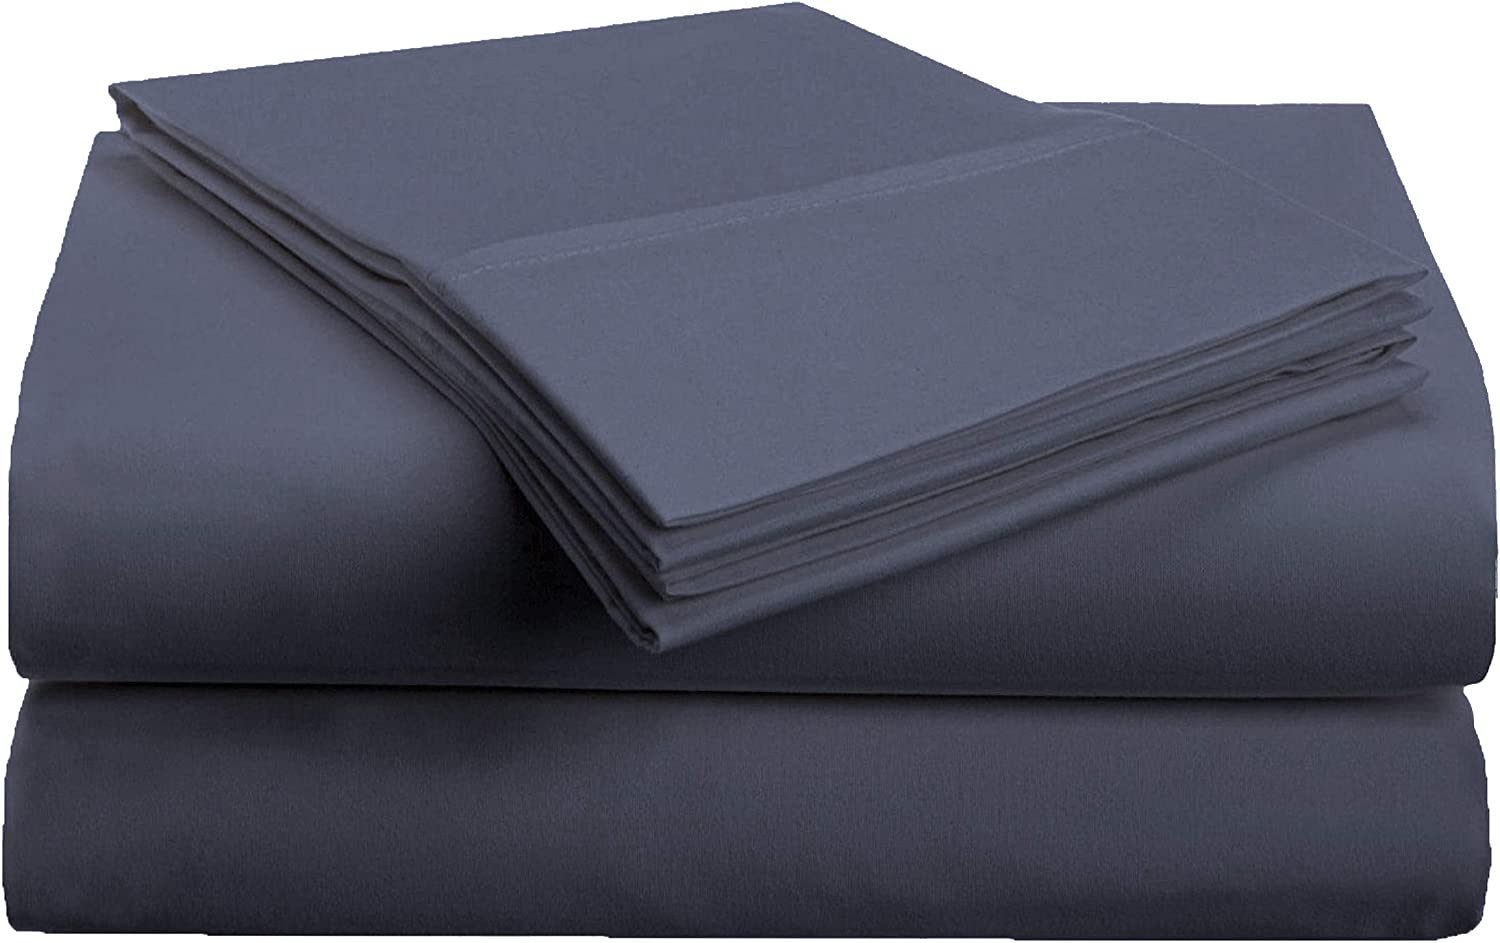 Superior 1500 Series Premium Quality 100% Brushed Soft Microfiber 3-Piece Luxury Deep Pocket Cooling Bed Sheet Set, Hypoallergenic, Wrinkle and Stain Resistant - Twin, Navy Blue